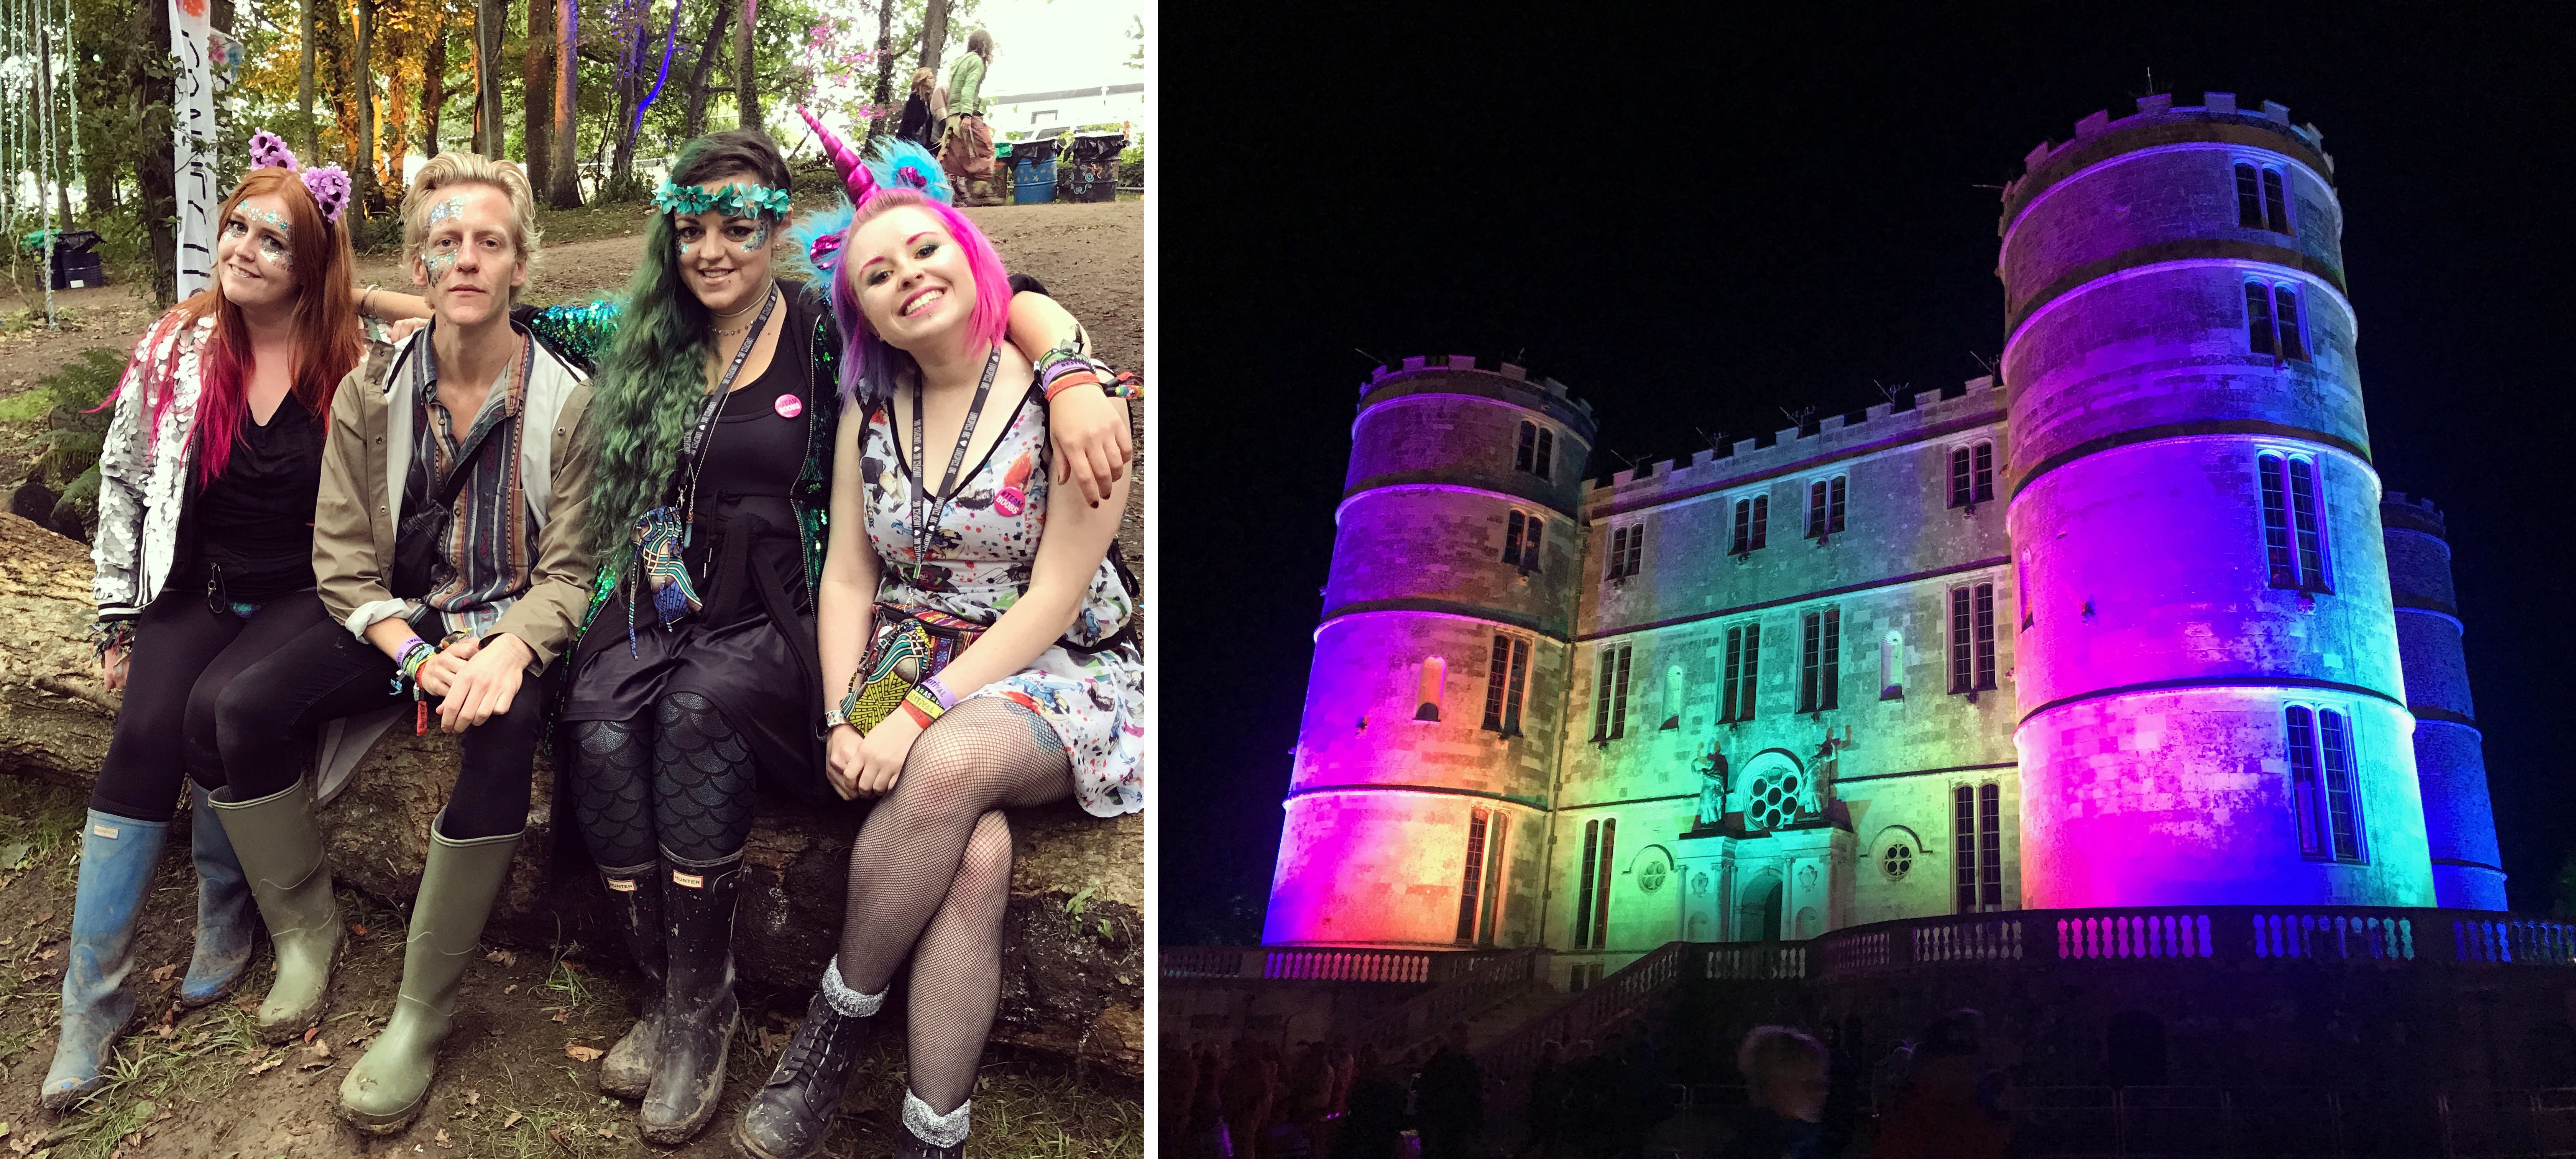 Luisa, Thom, Jodie and I in the Ambient Forest, and the rainbow Lulworth Castle UK festival